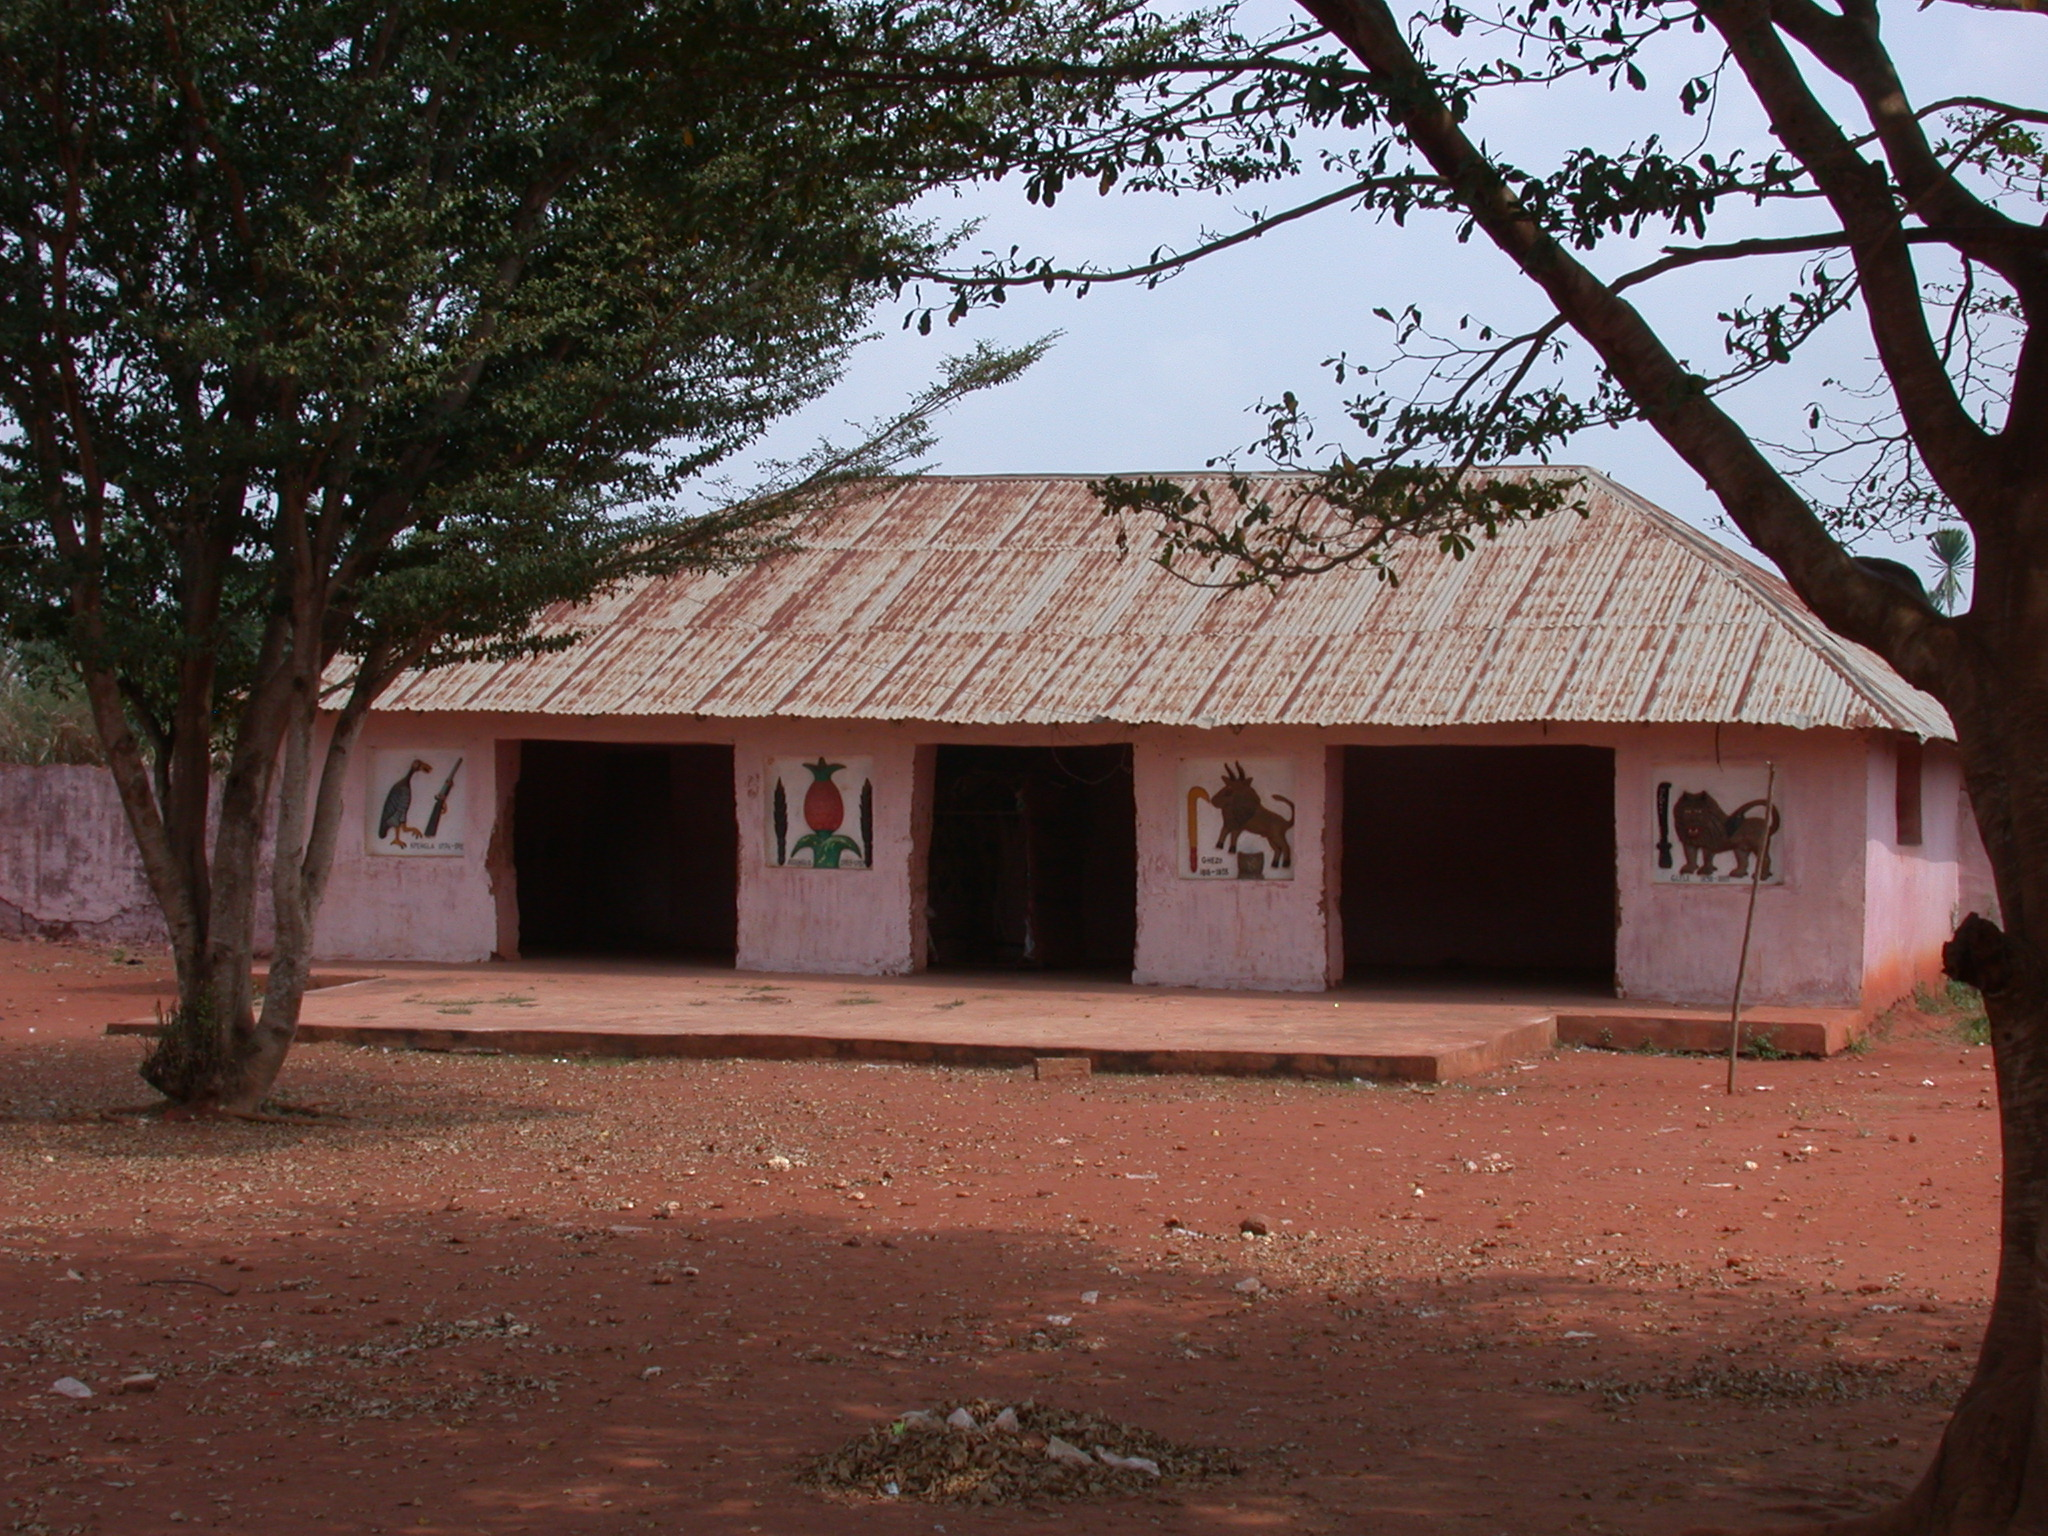 Building in Courtyard, Palace of Crown Prince Agonglo, Abomey, Benin